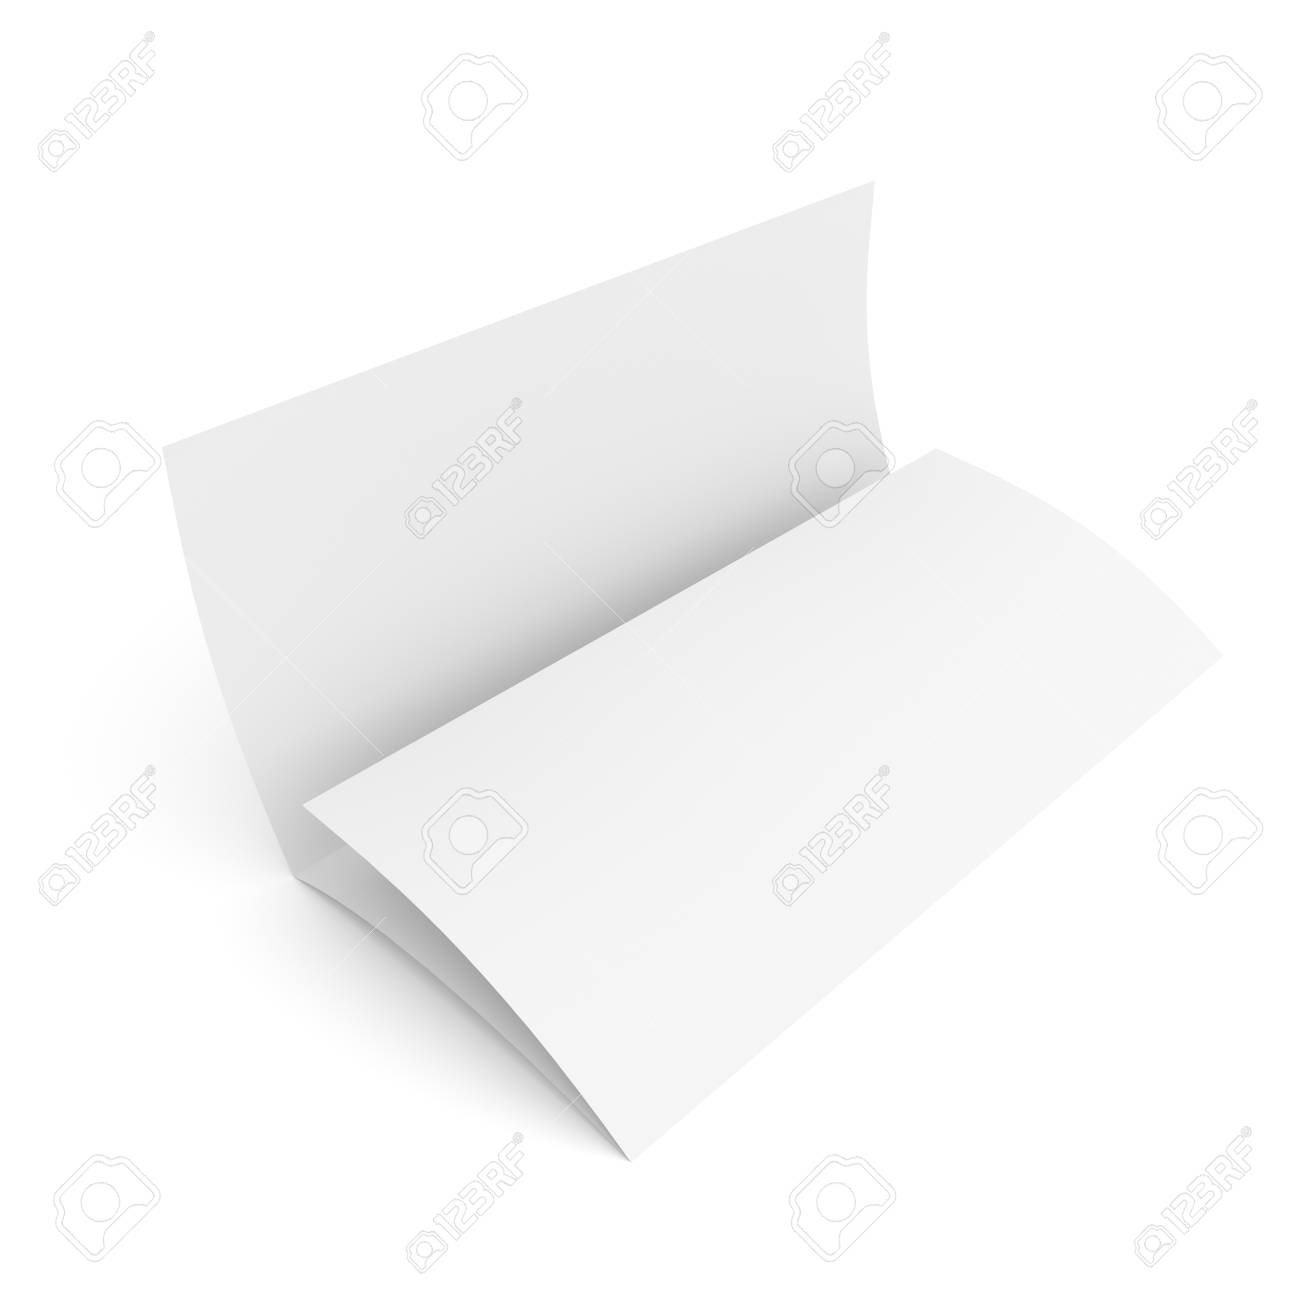 leaflet blank tri fold paper brochure mockup isolated on white